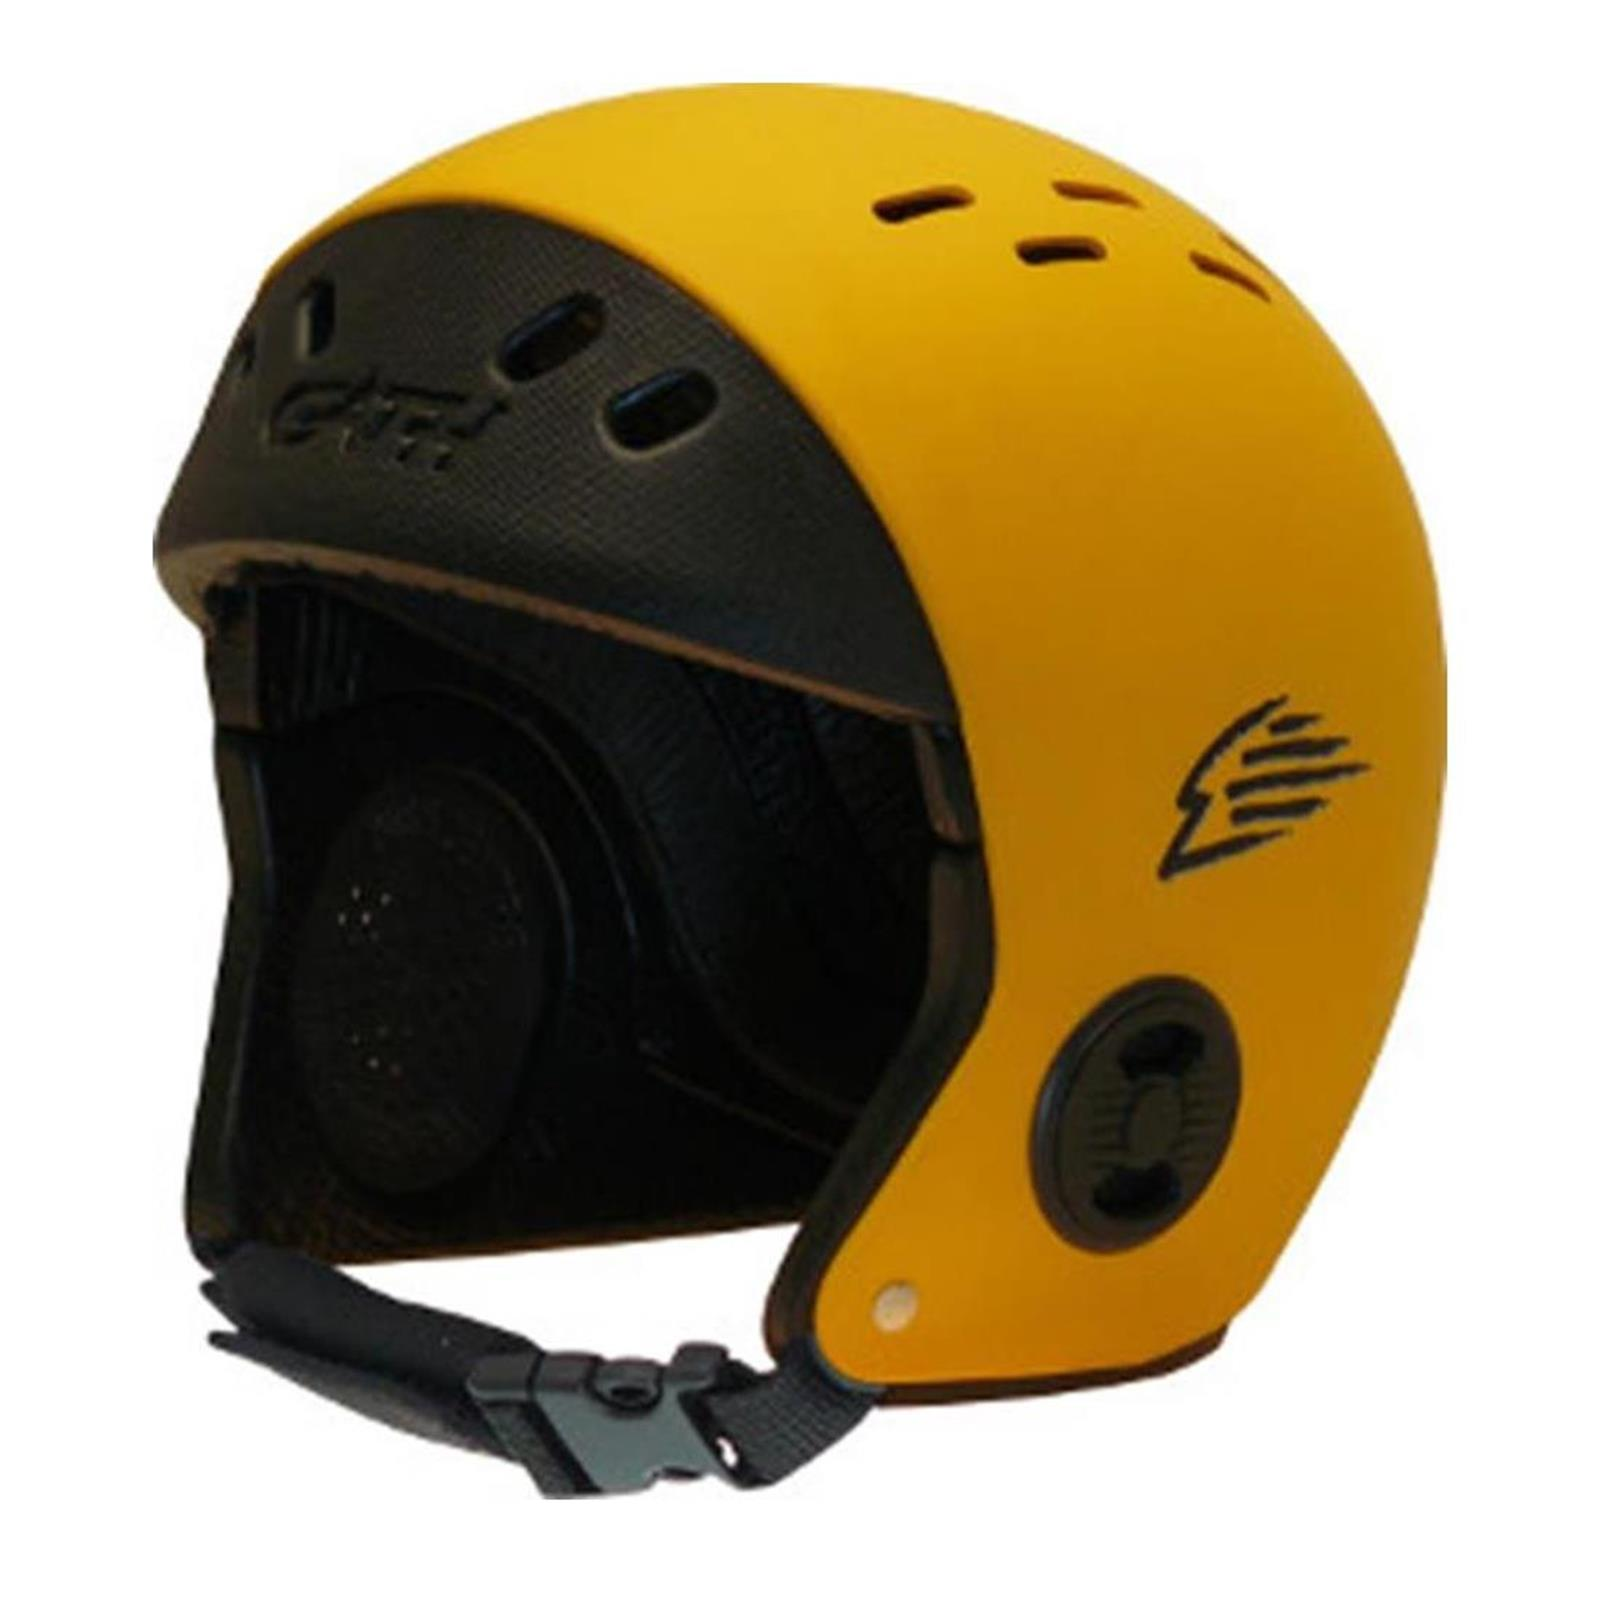 GATH Helm Standard S yellow